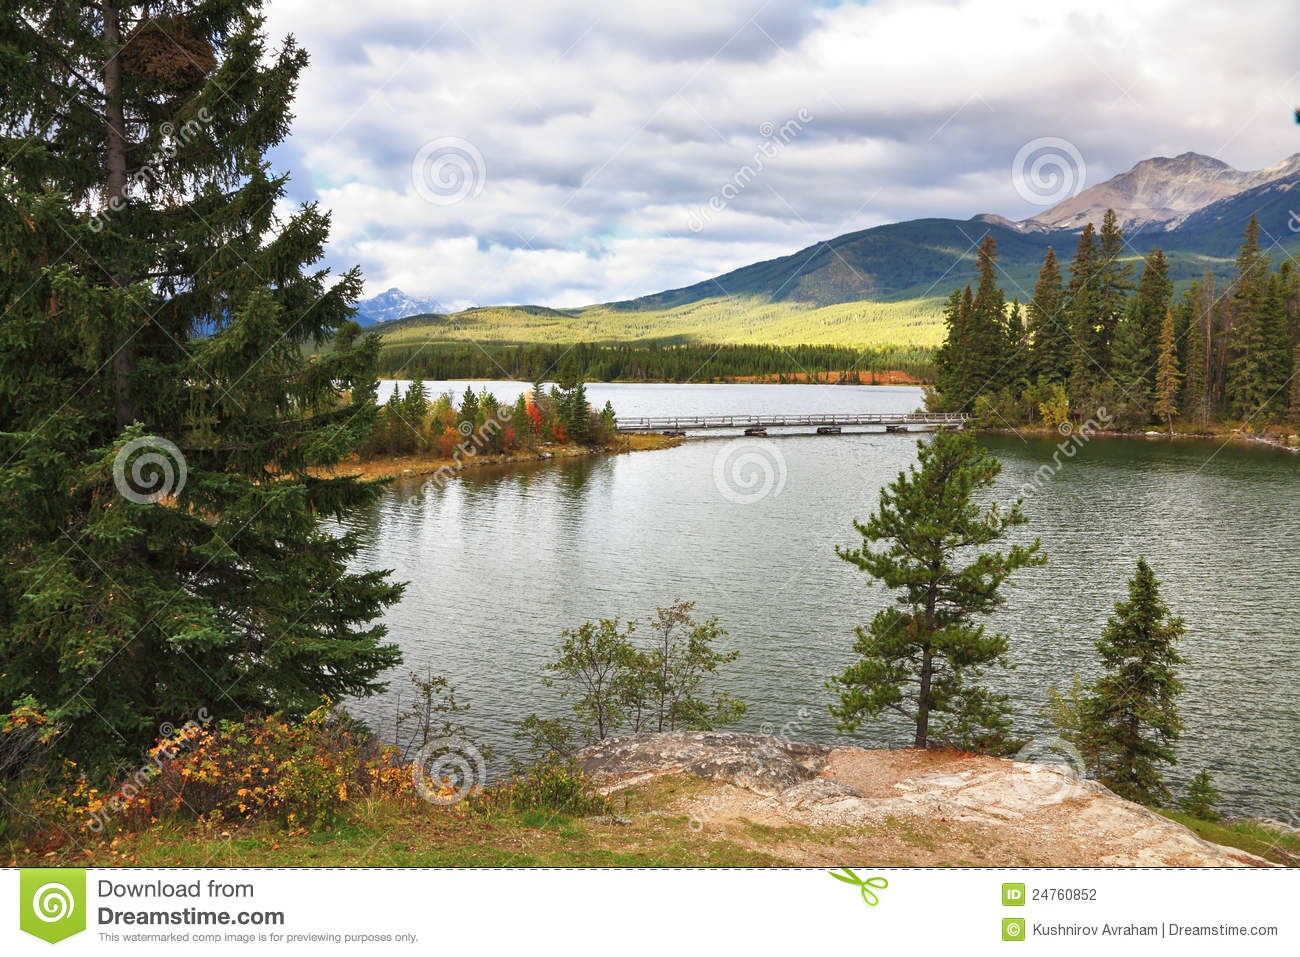 Shining silvery surface of the lake